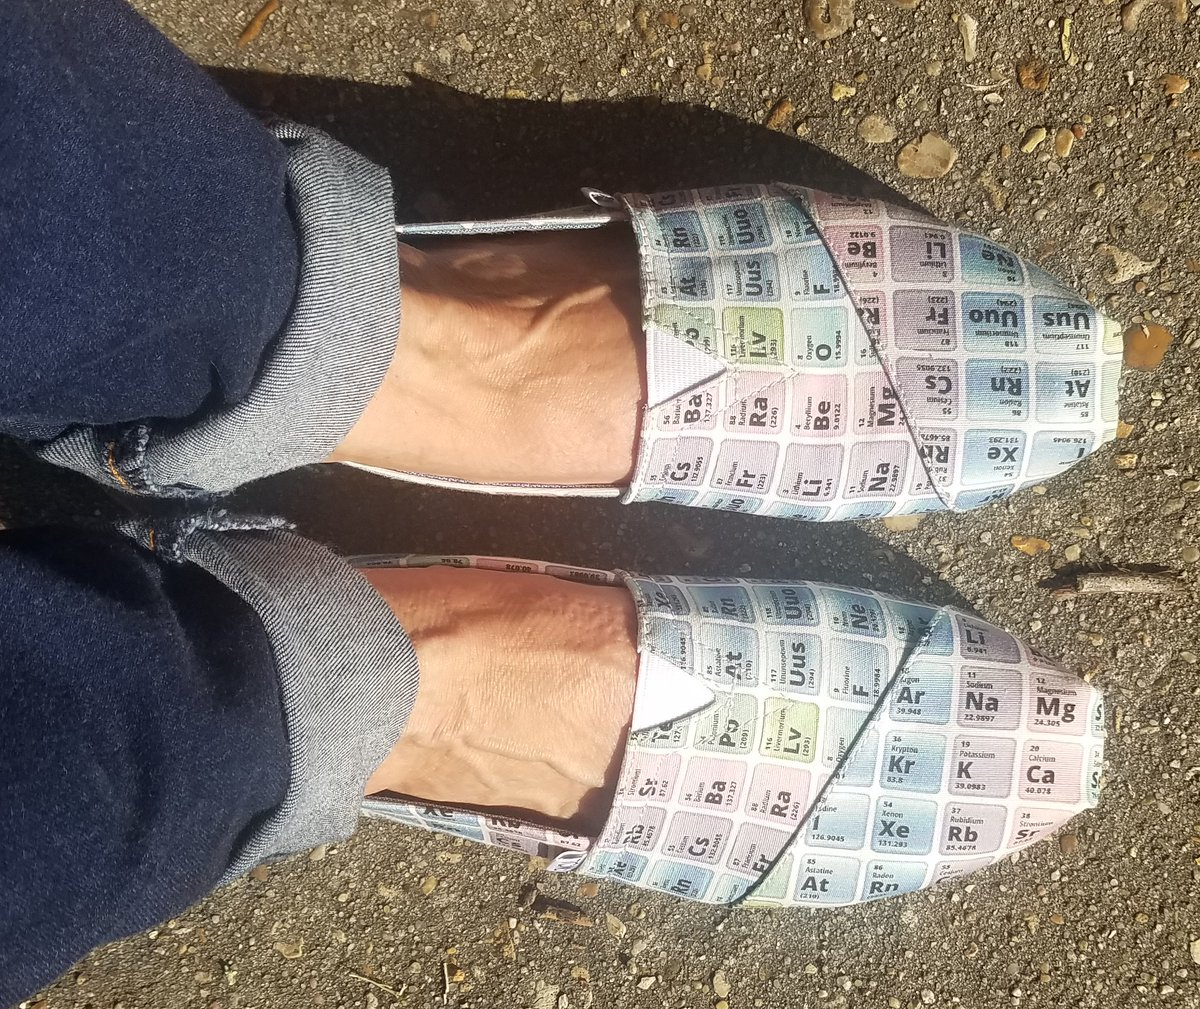 Dawn Saucier On Twitter New Shoes For Stemqueen Periodictable